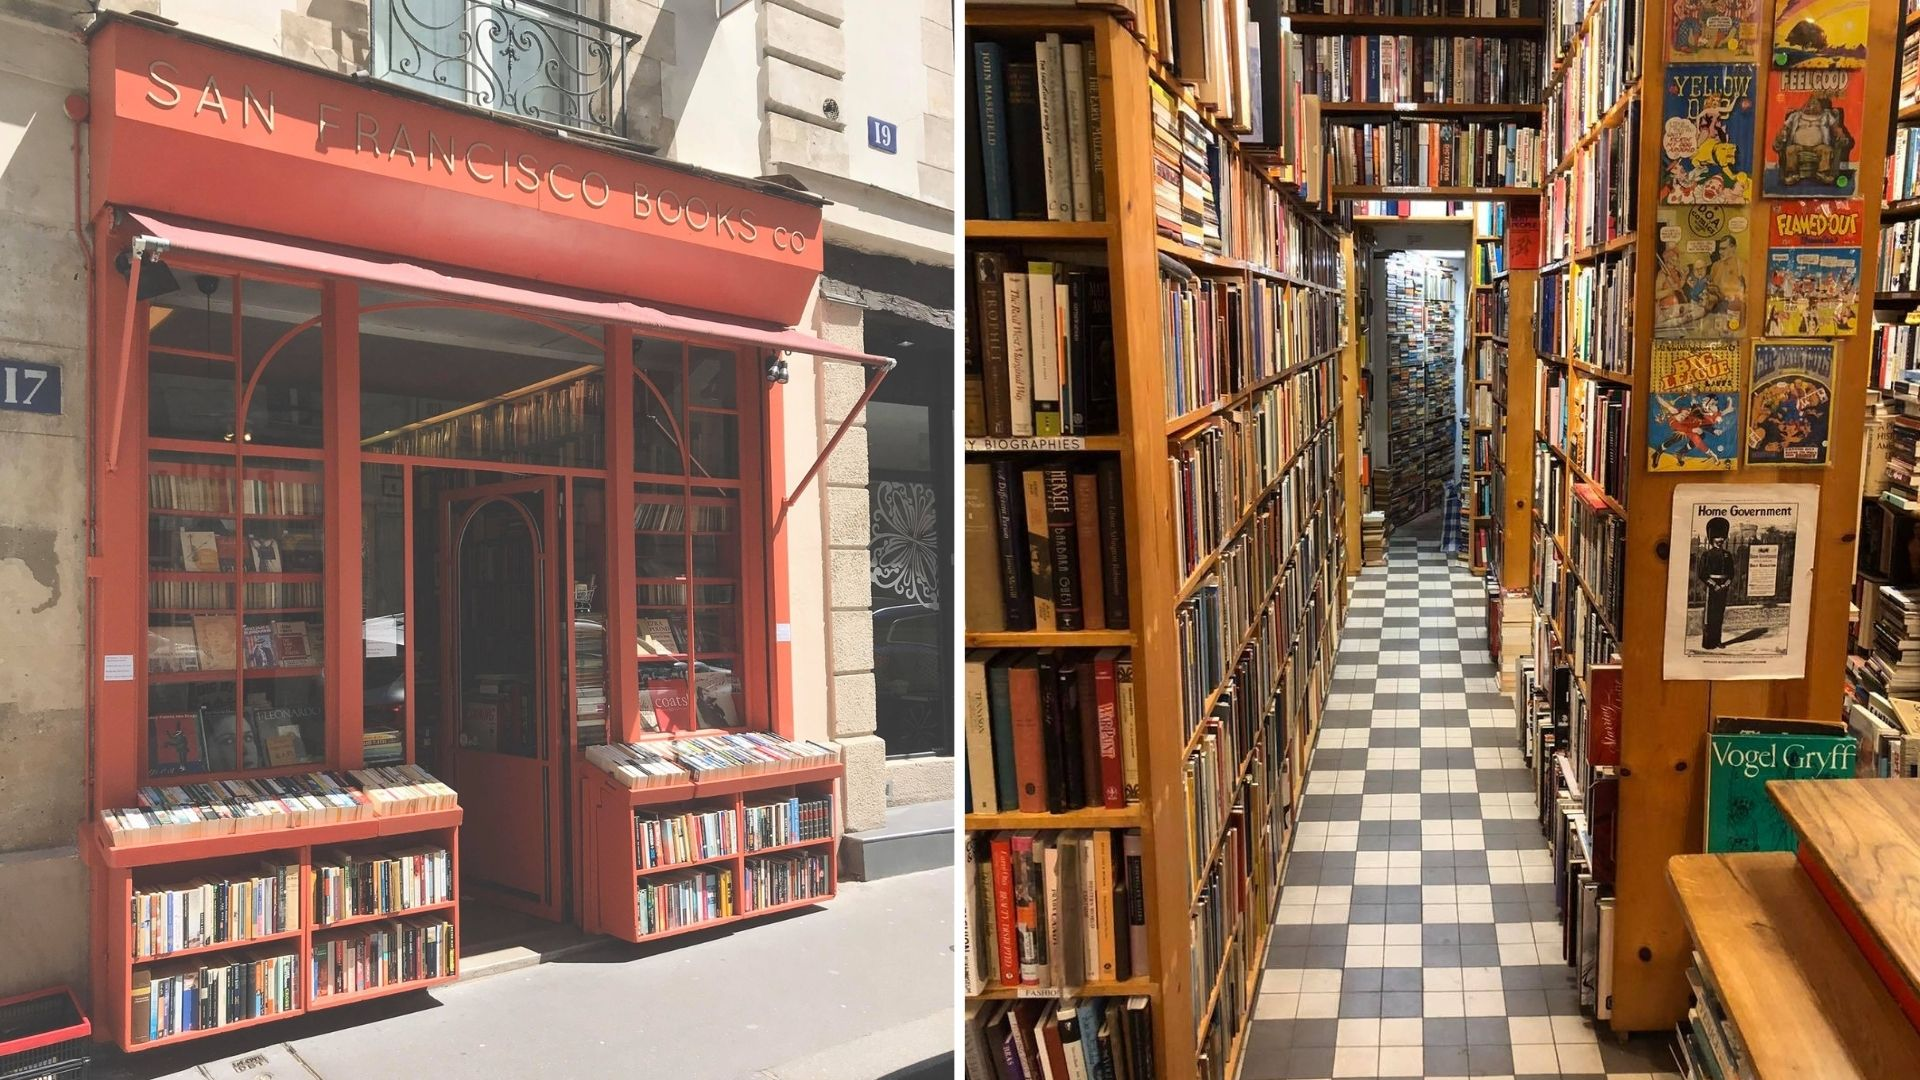 san francisco book co bookstore paris librairie anglaise anglophone anglosaxonne